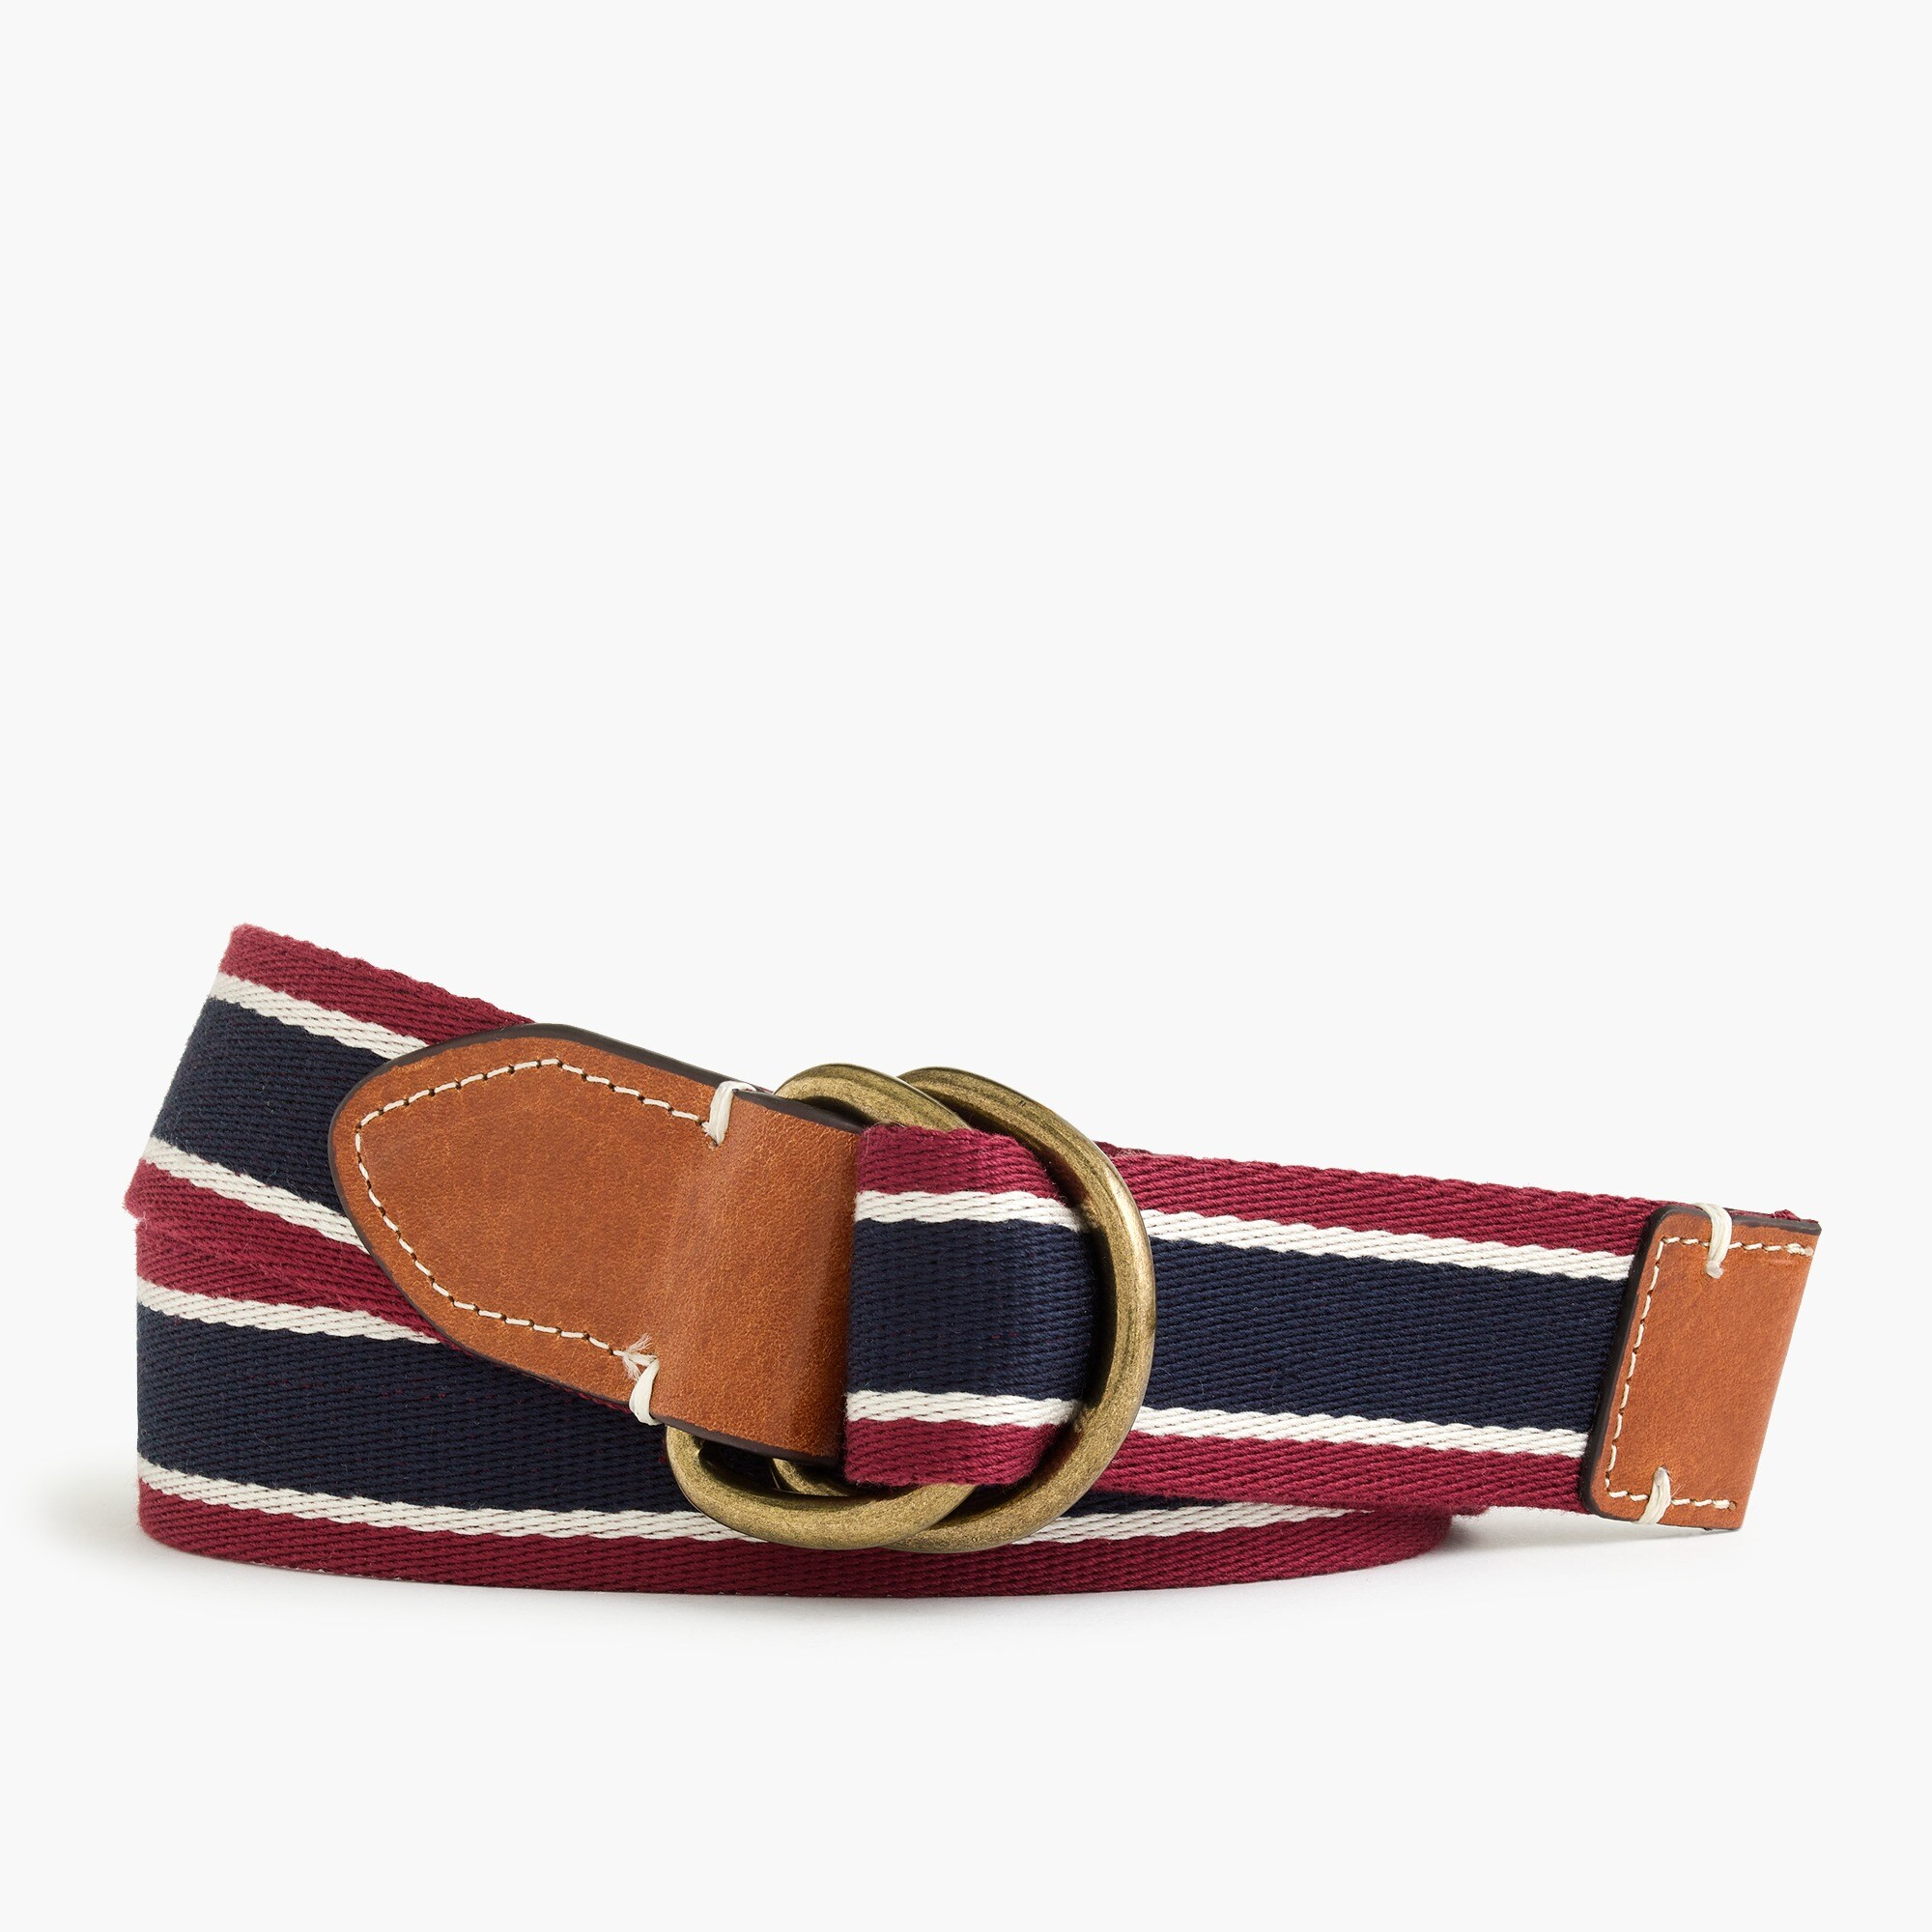 Image 1 for Cotton belt in Oar Stripe